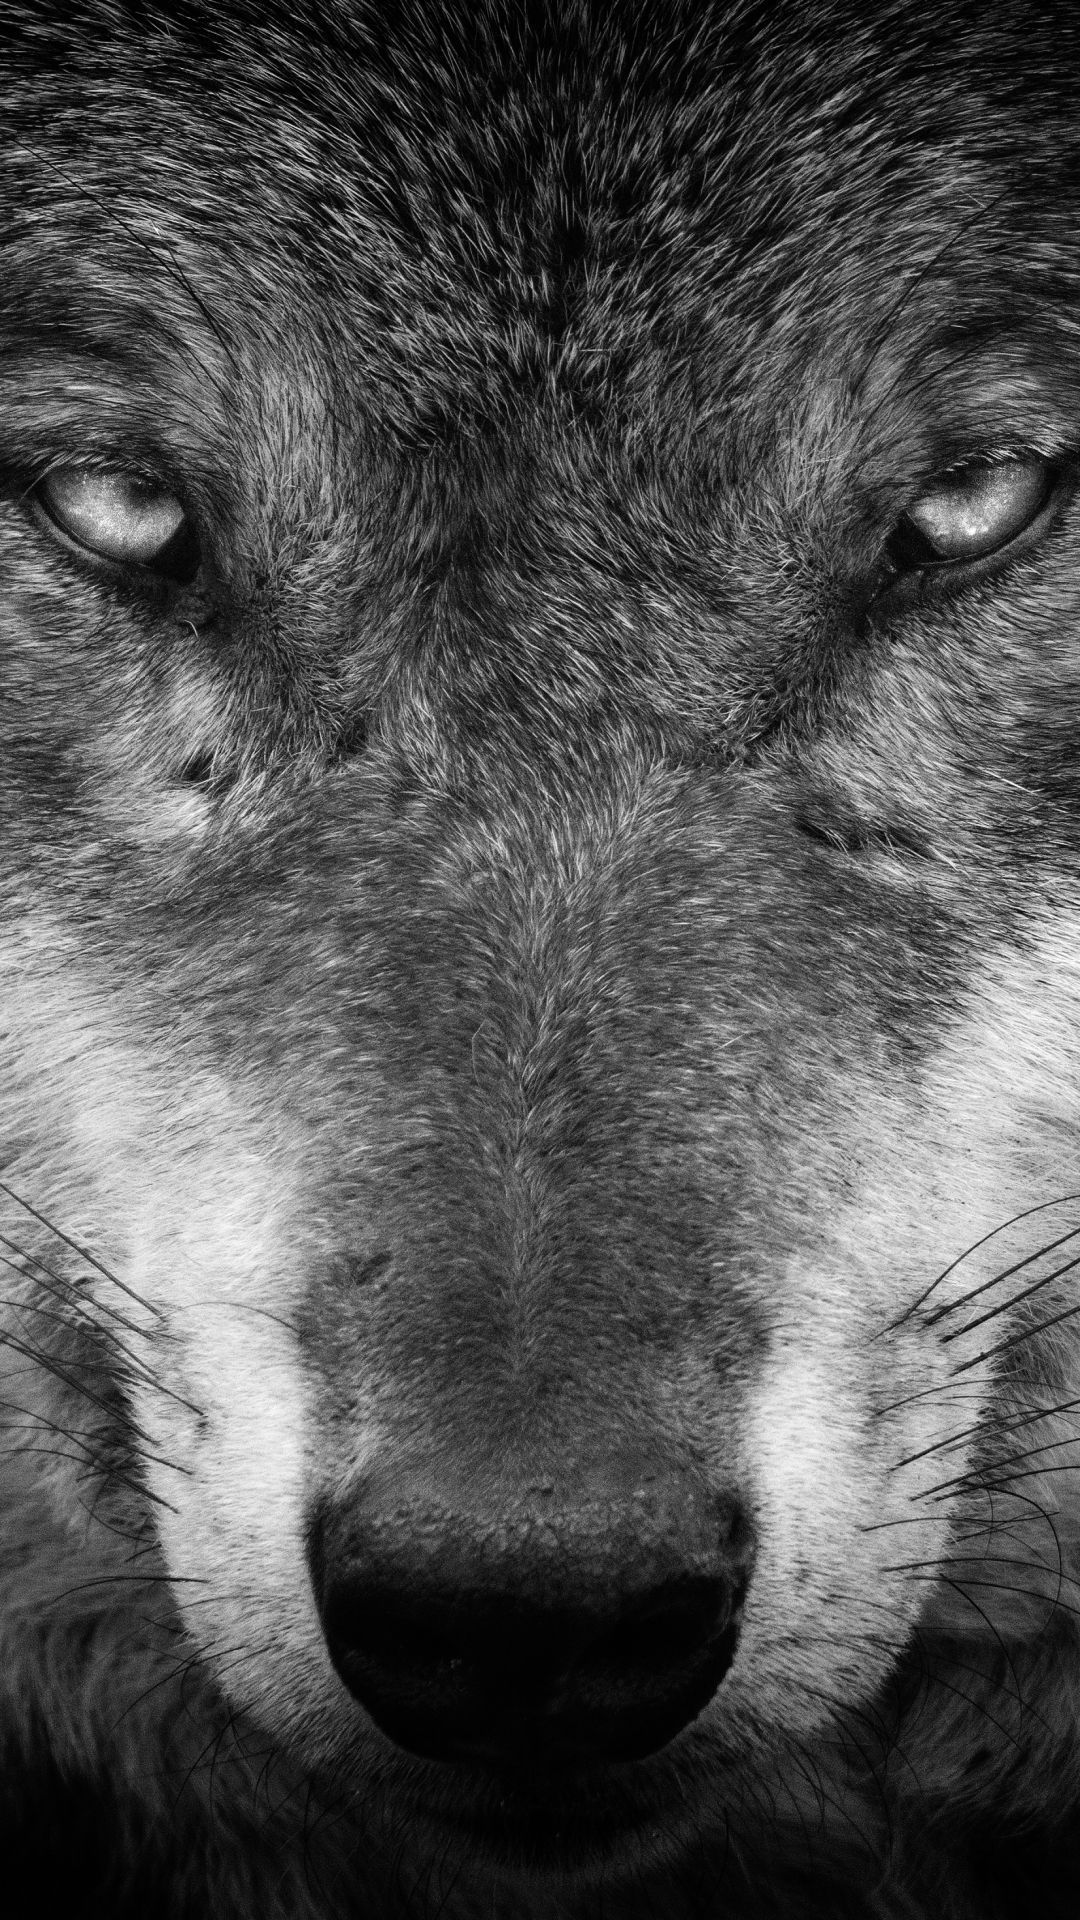 Wolf Android Iphone Desktop Hd Backgrounds Wallpapers 1080p